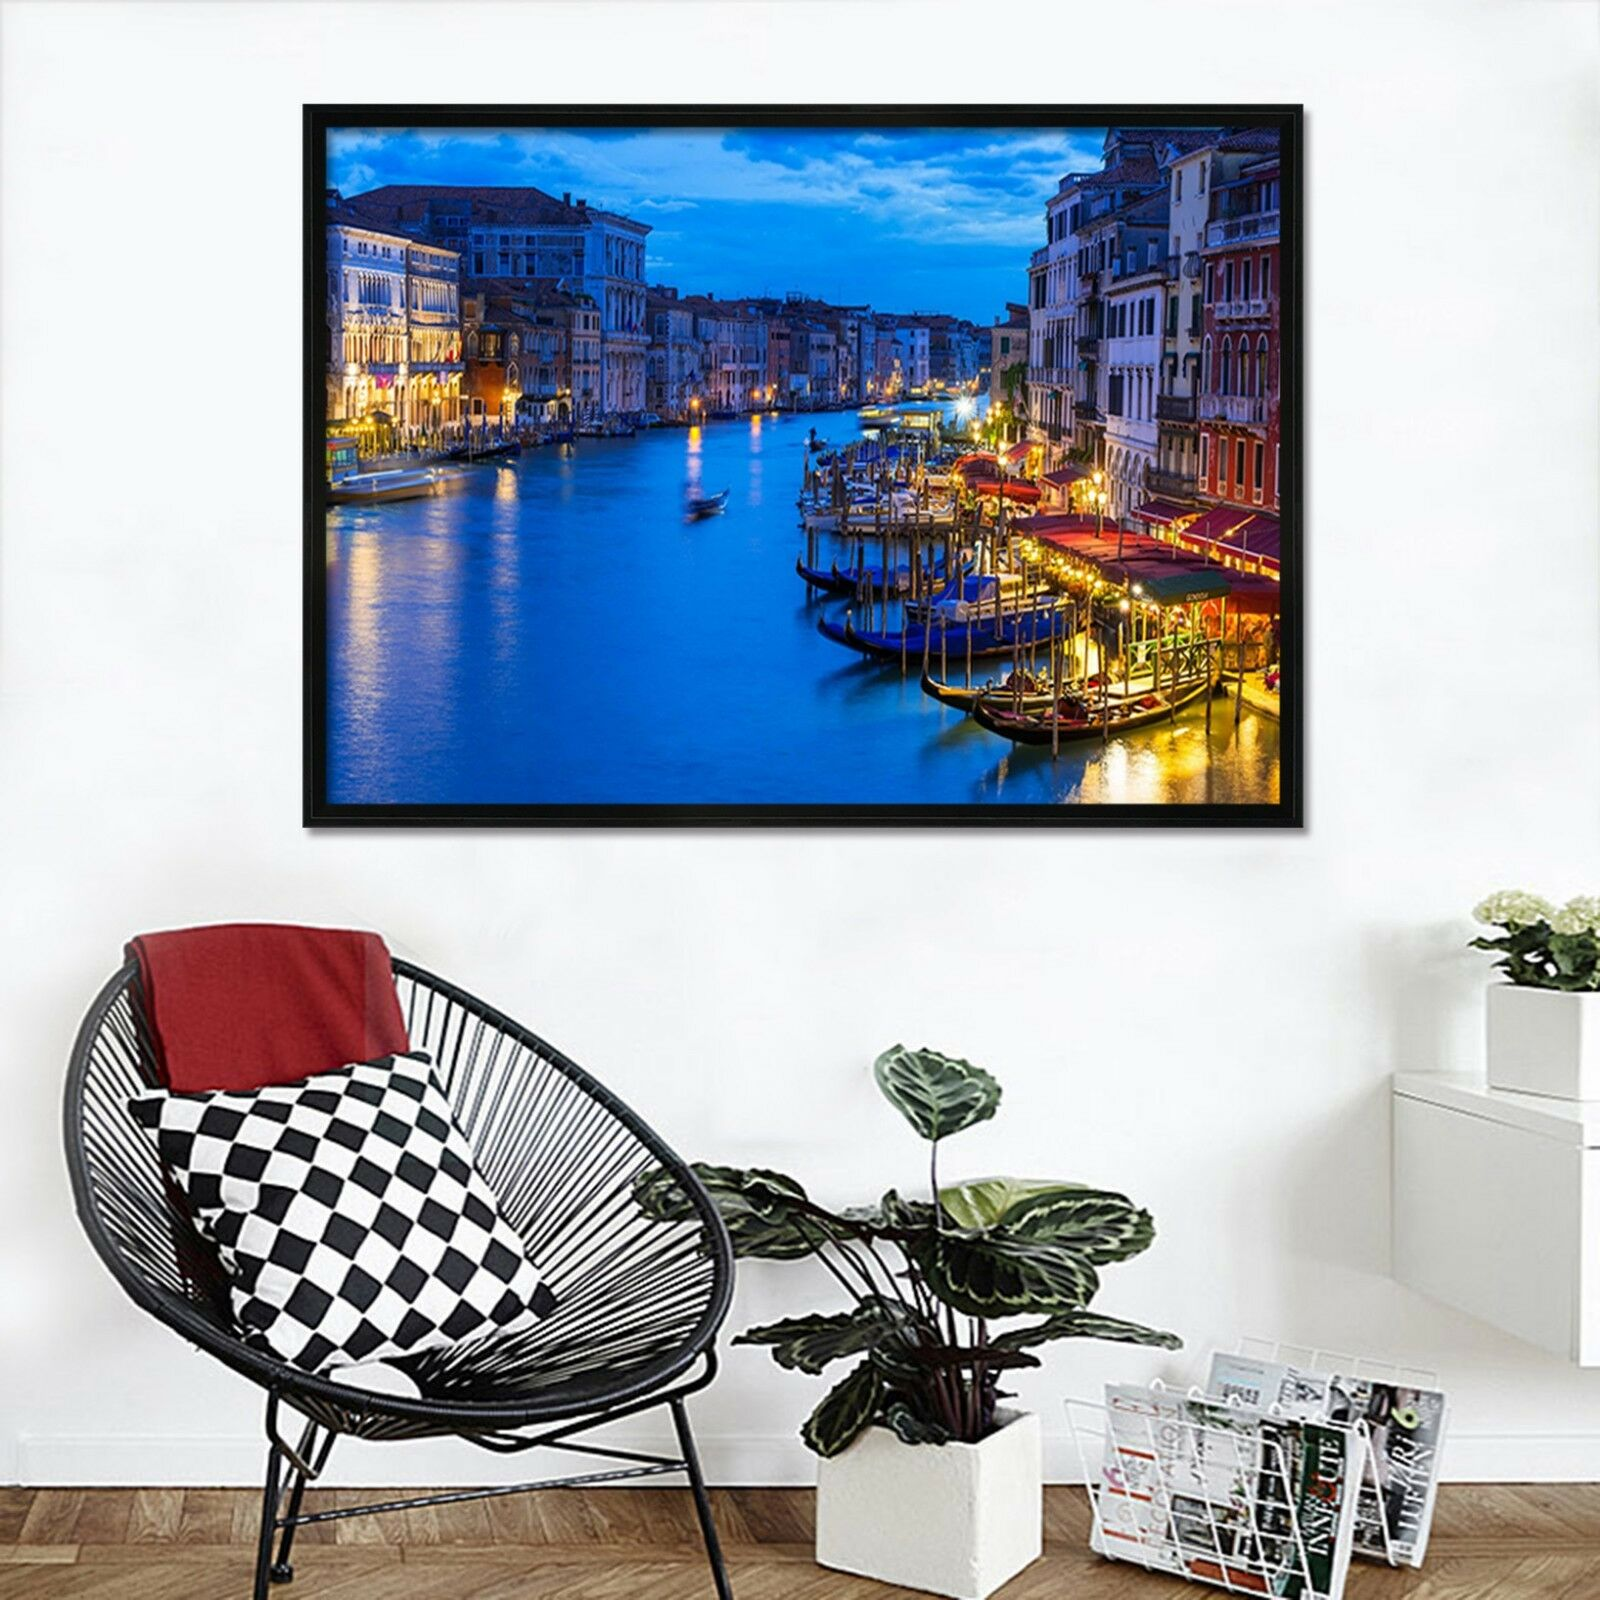 3D Town River 456 Fake Framed Poster Home Decor Print Painting Unique Art Summer